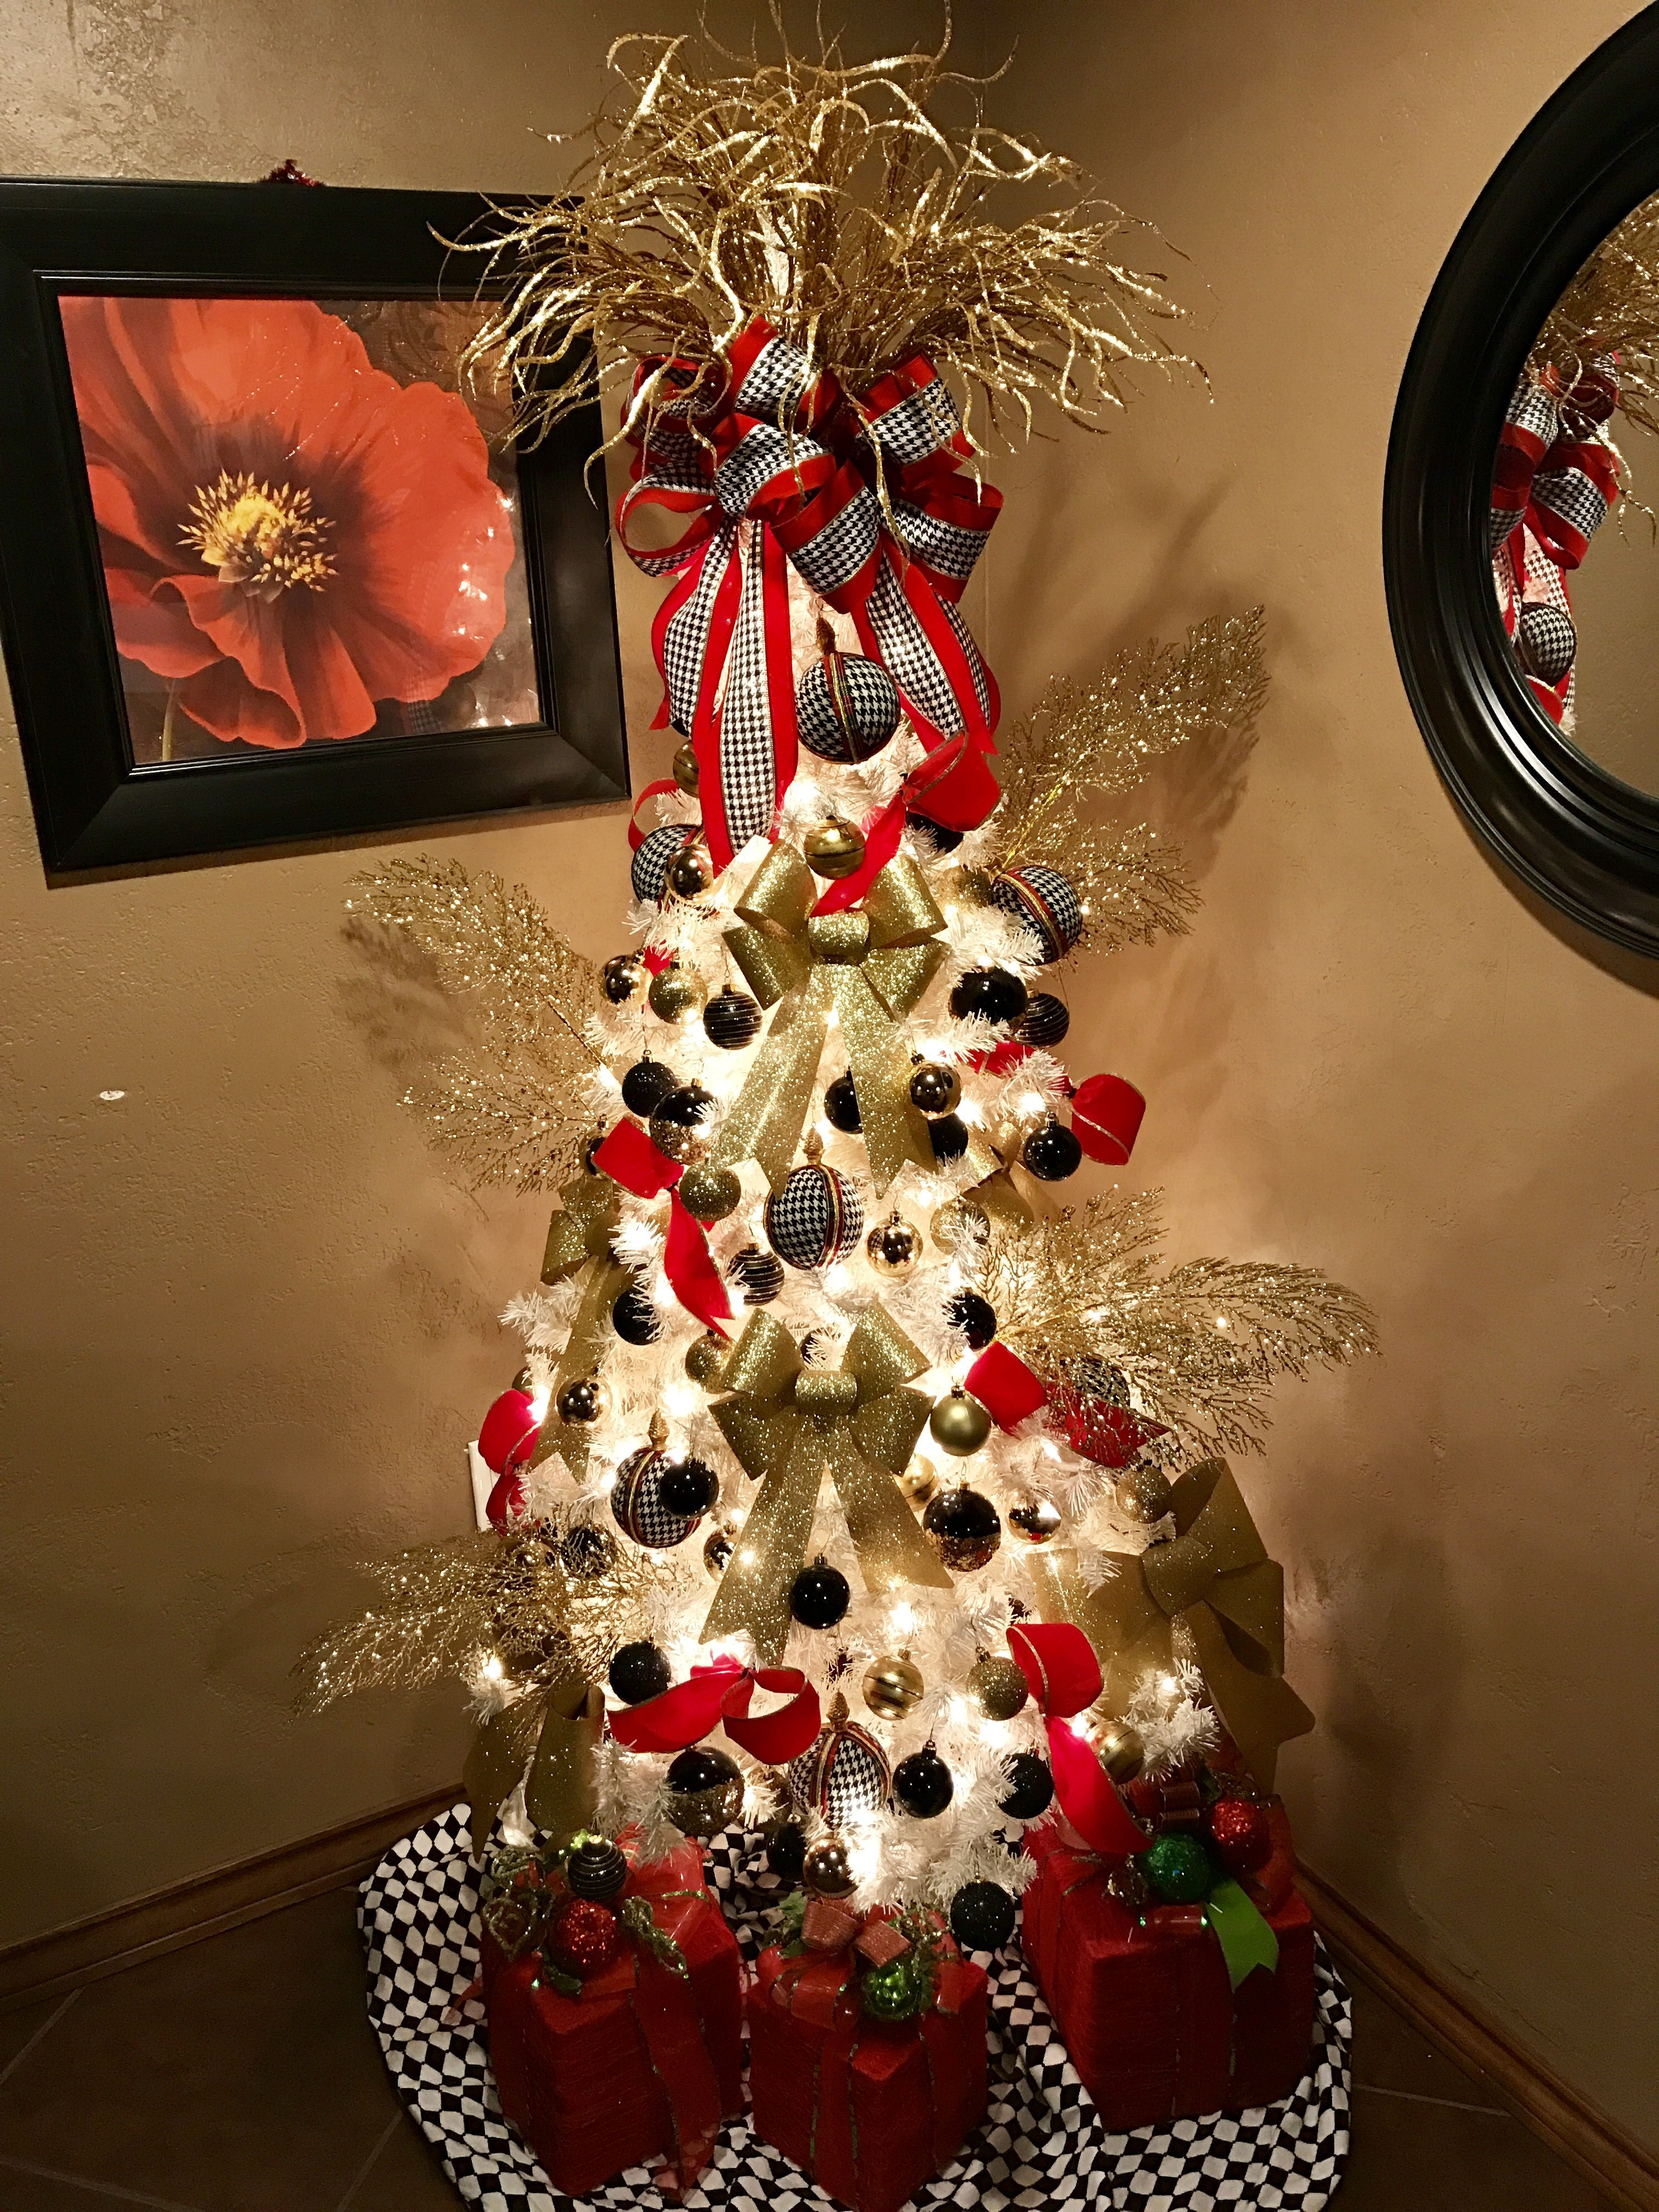 My Family Room White Christmas Tree, Gold, Red,Black, And Houndstooth